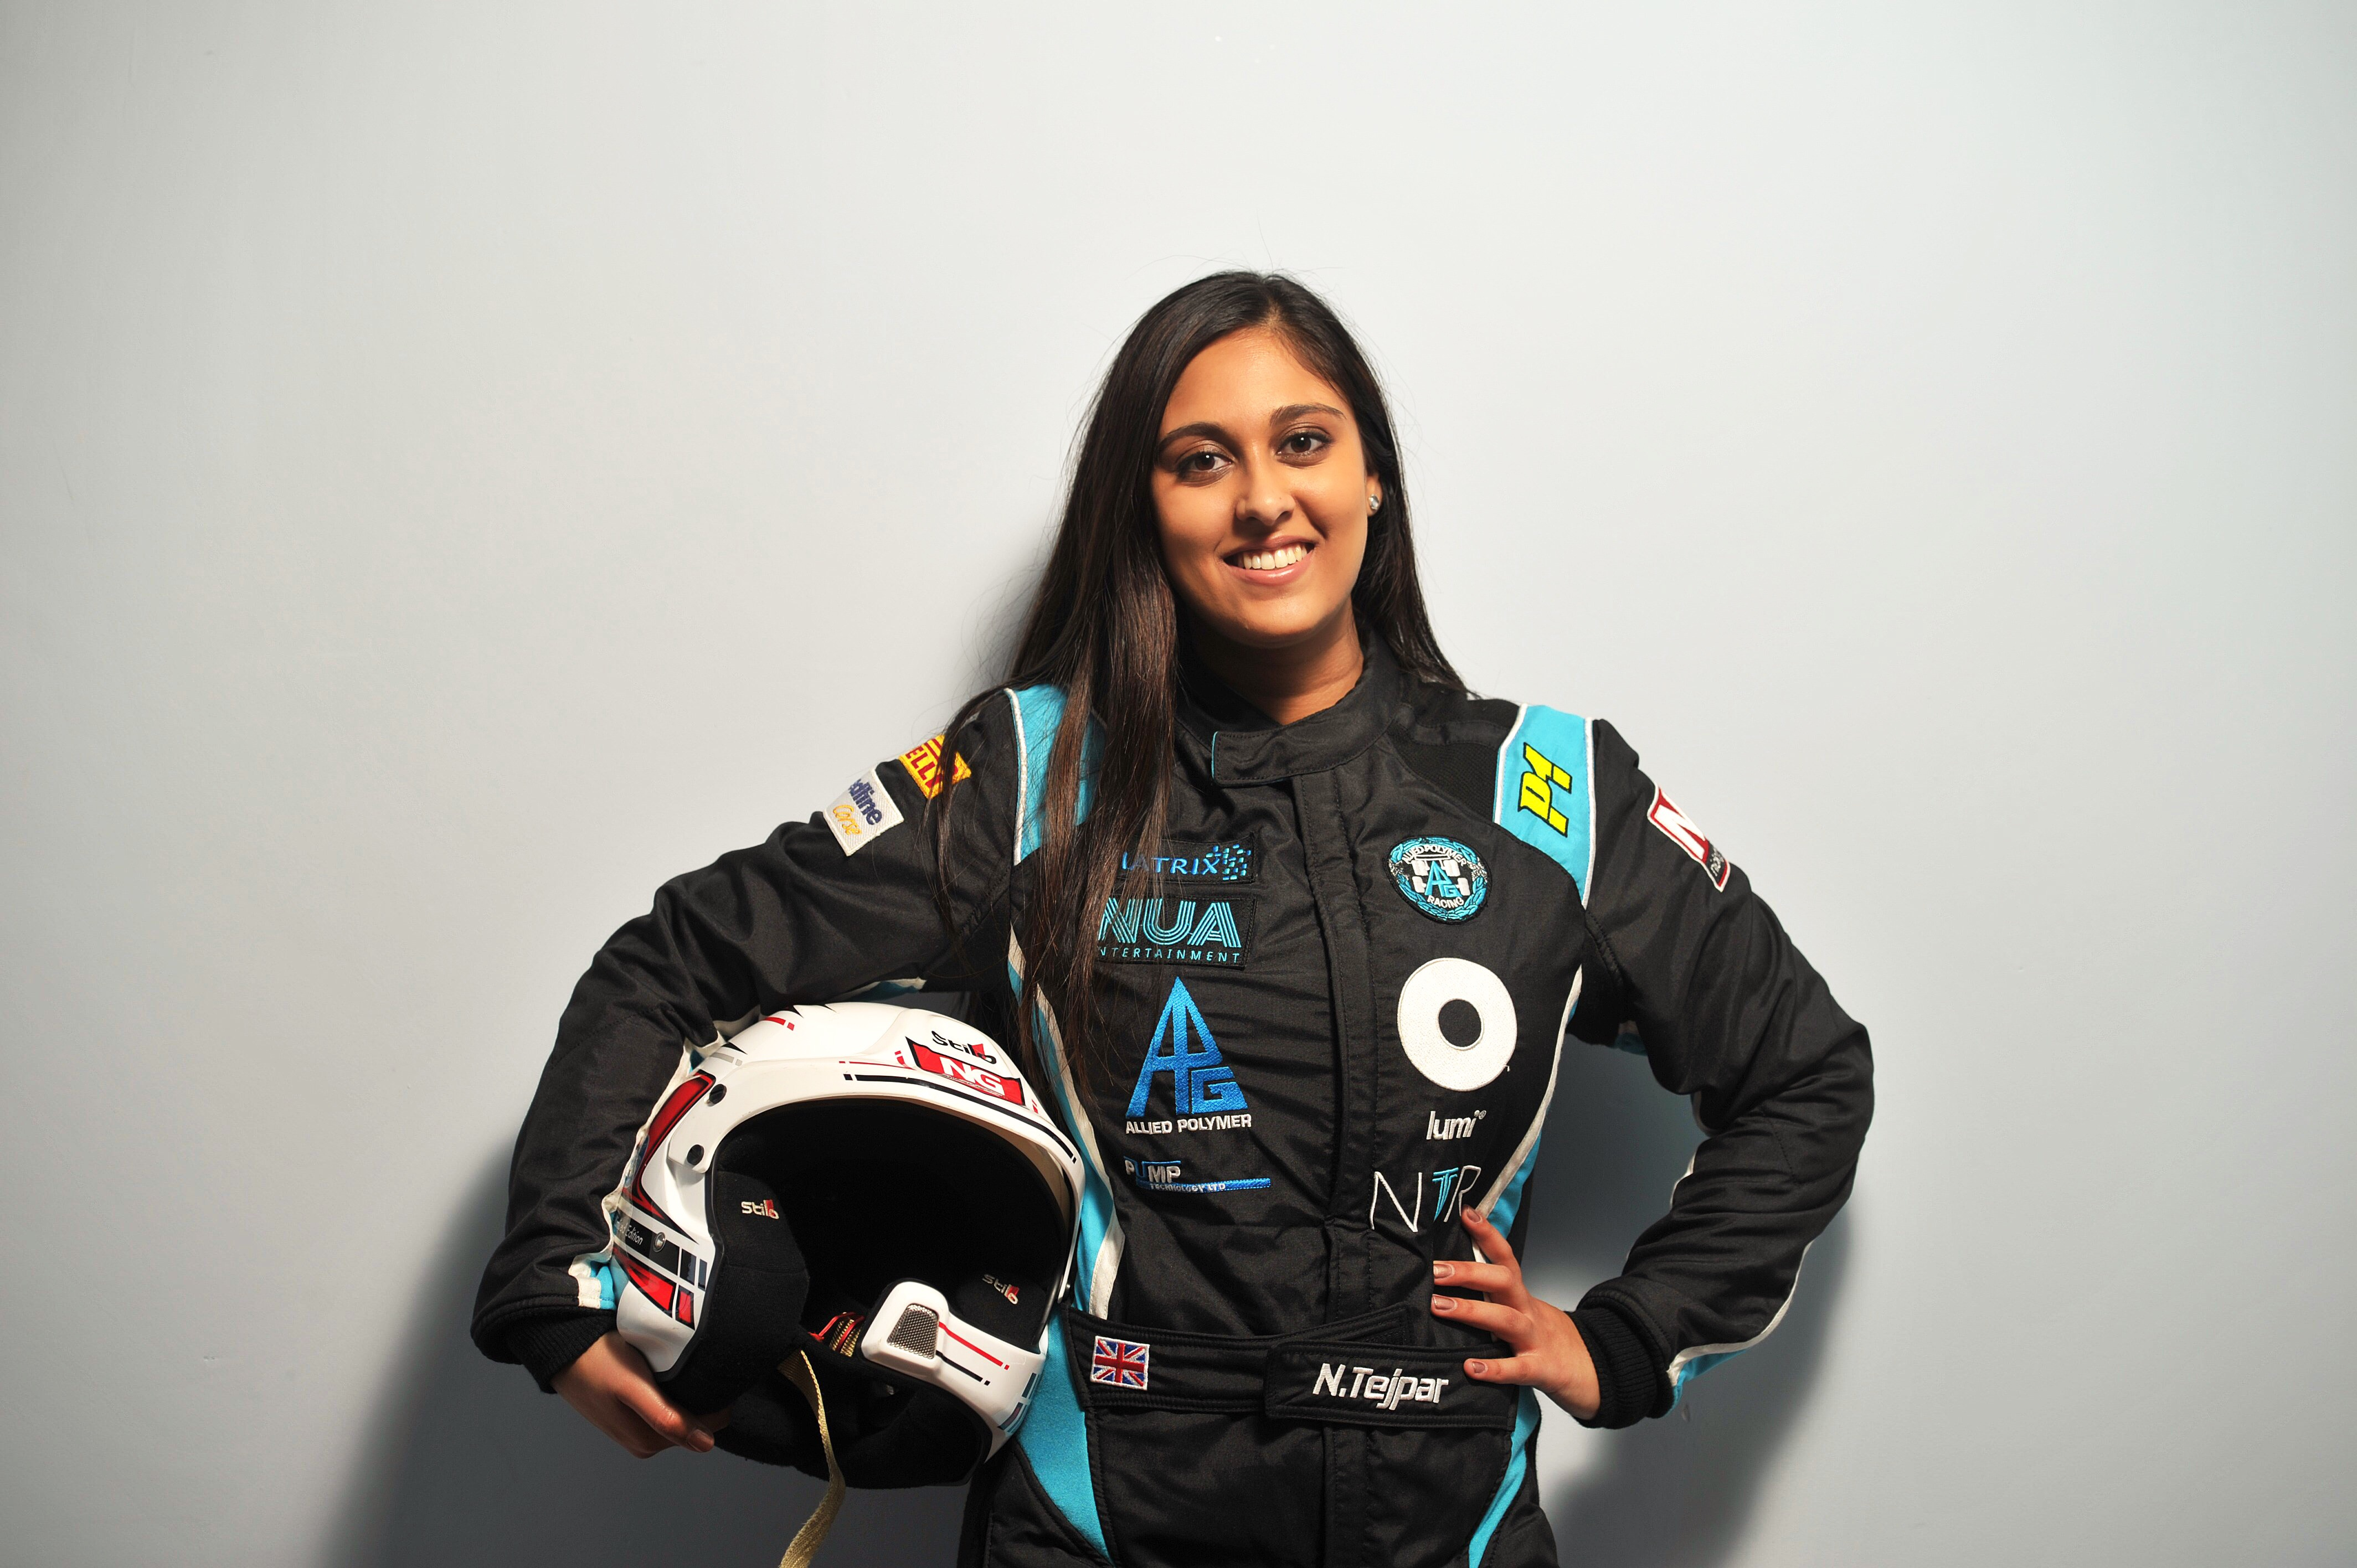 British champion Nabila Tejpar believes that all motorsports are perceived to be dominated by men